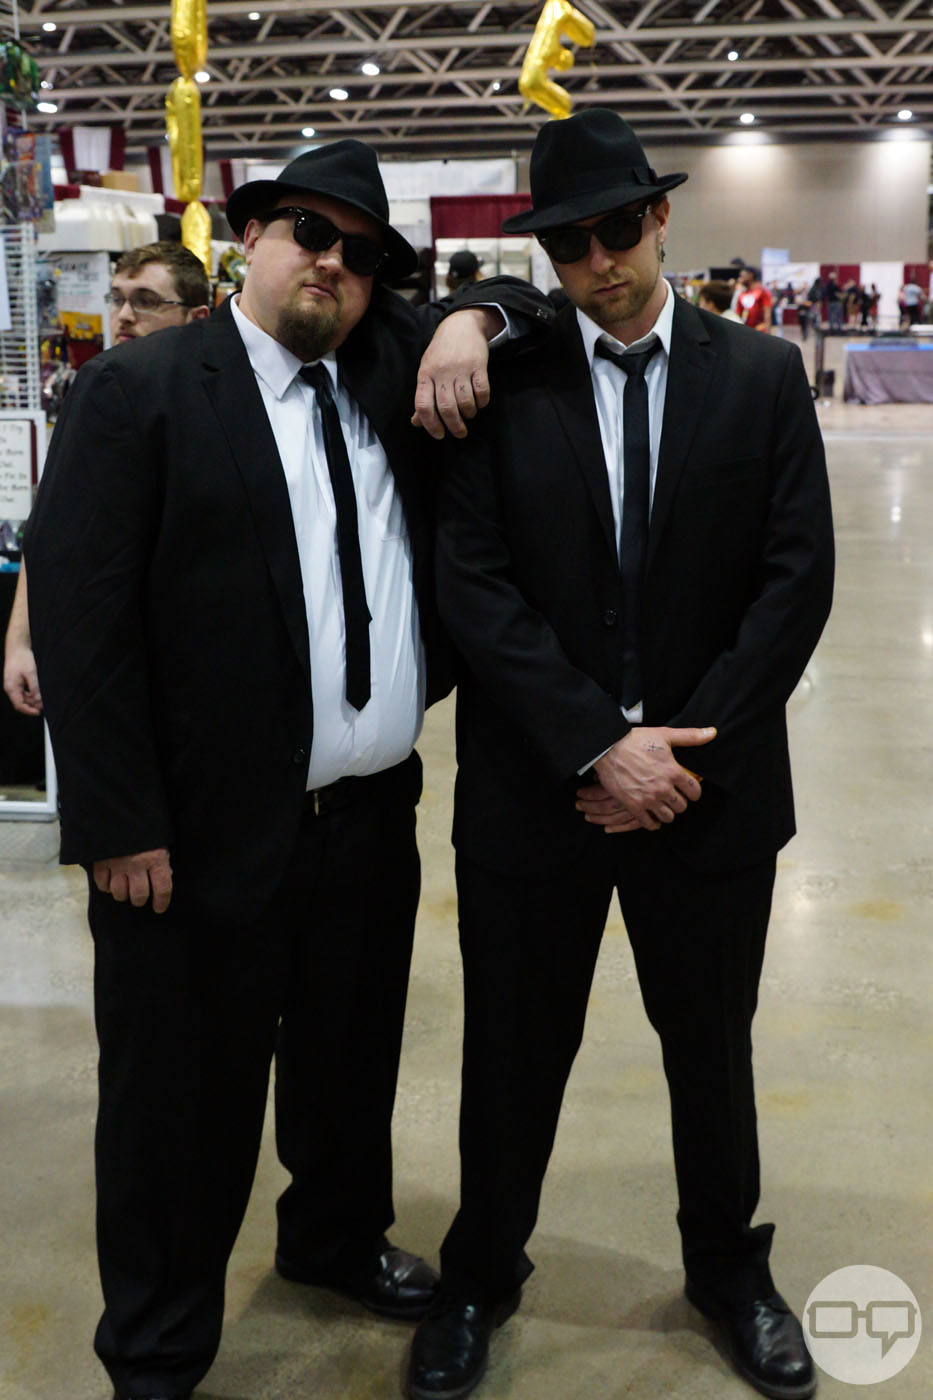 Planet-Comicon-2015-ProNerd-Cosplay-D5-3